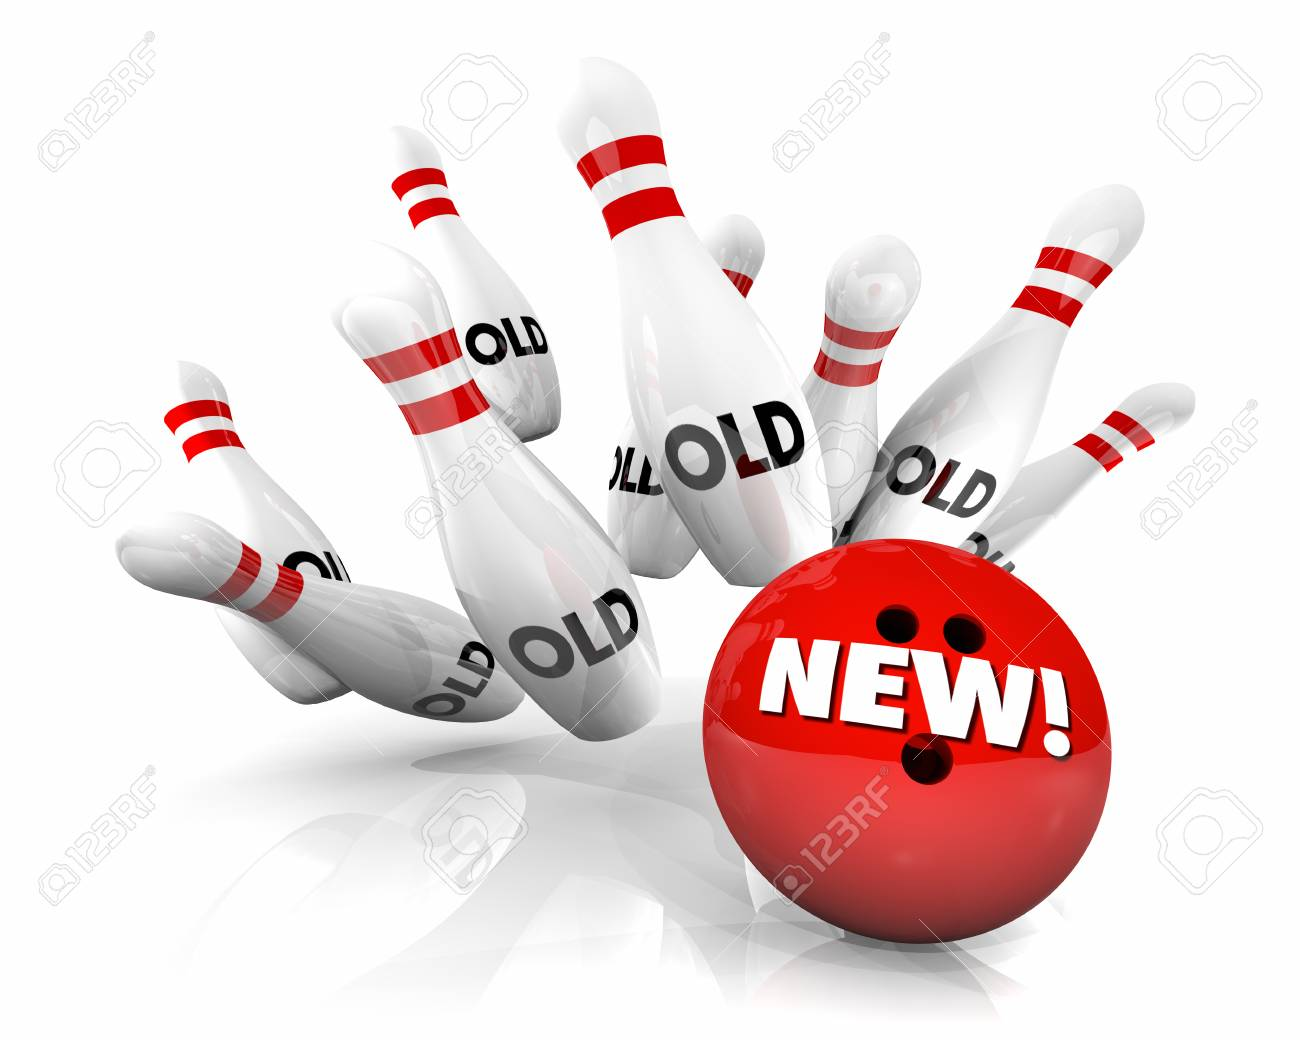 New Vs Old Bowling Ball Strike Pins 3d Illustration Stock Photo